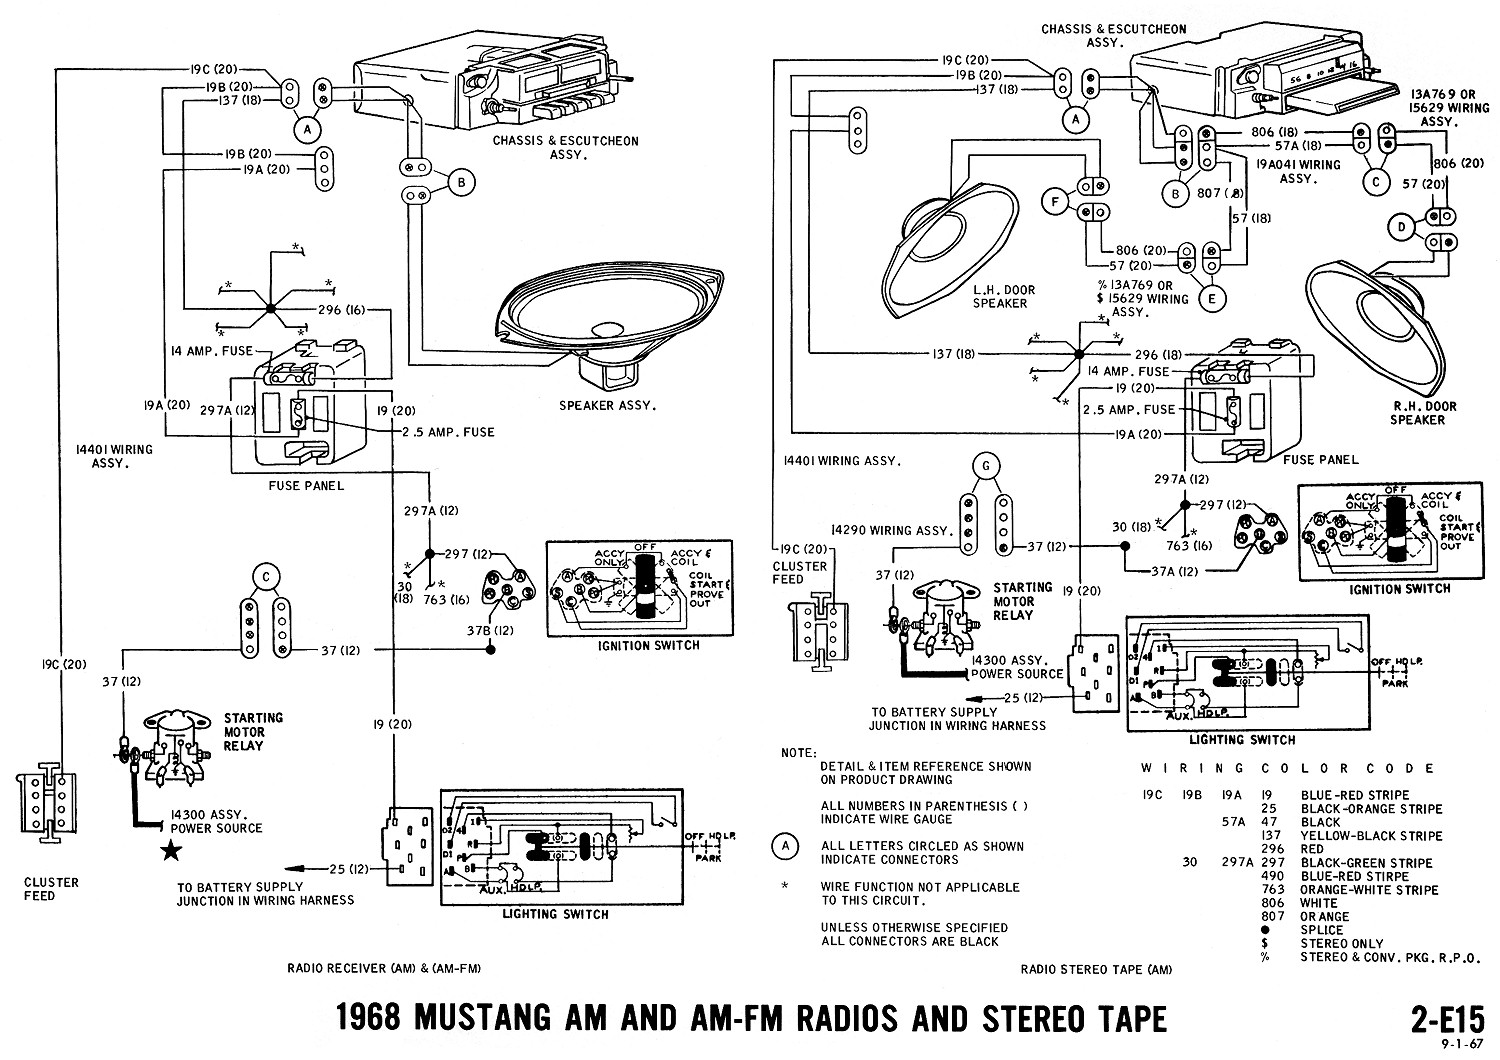 E15 2000 mustang v6 radio wiring diagram efcaviation com 2000 ford mustang wiring diagram at bakdesigns.co